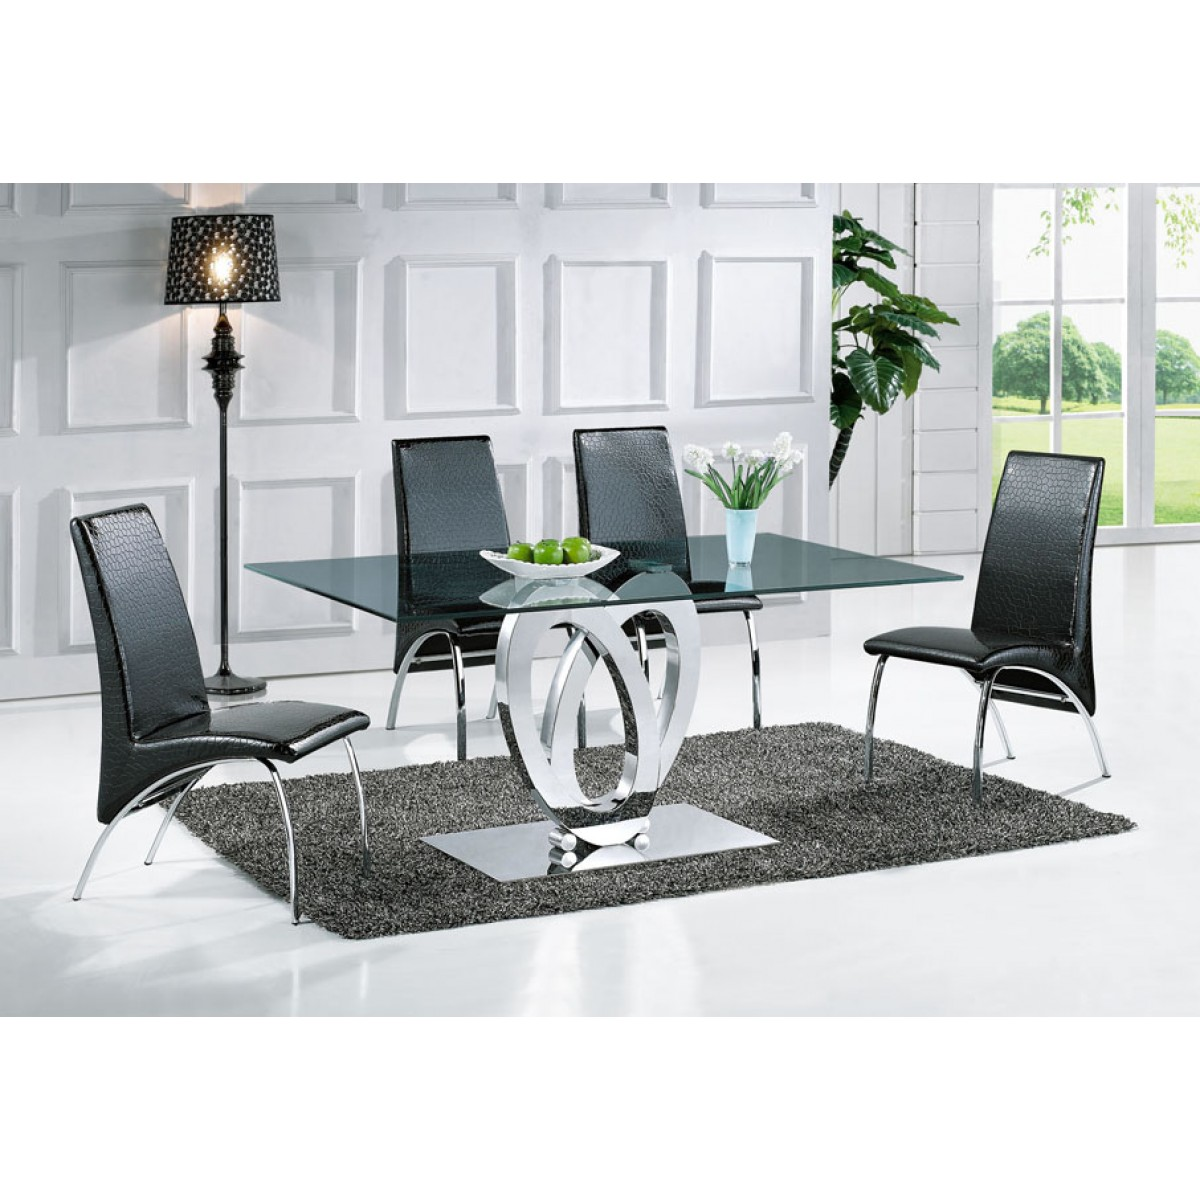 Table de salle manger design ellipse taille au choix for Table sejour design